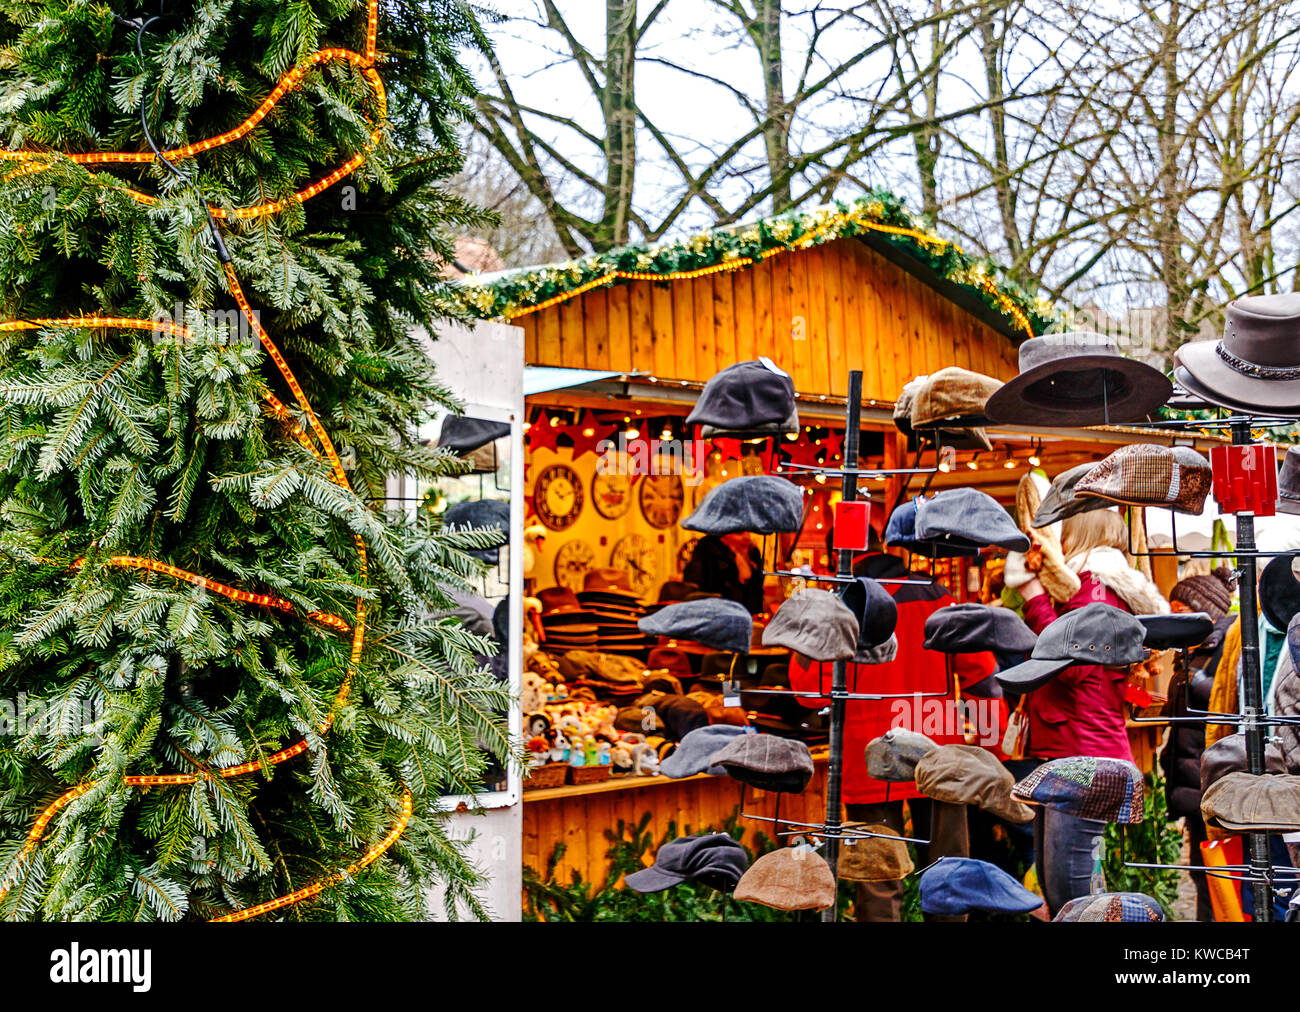 Shopping for Caps at a German Christmas Market - Stock Image